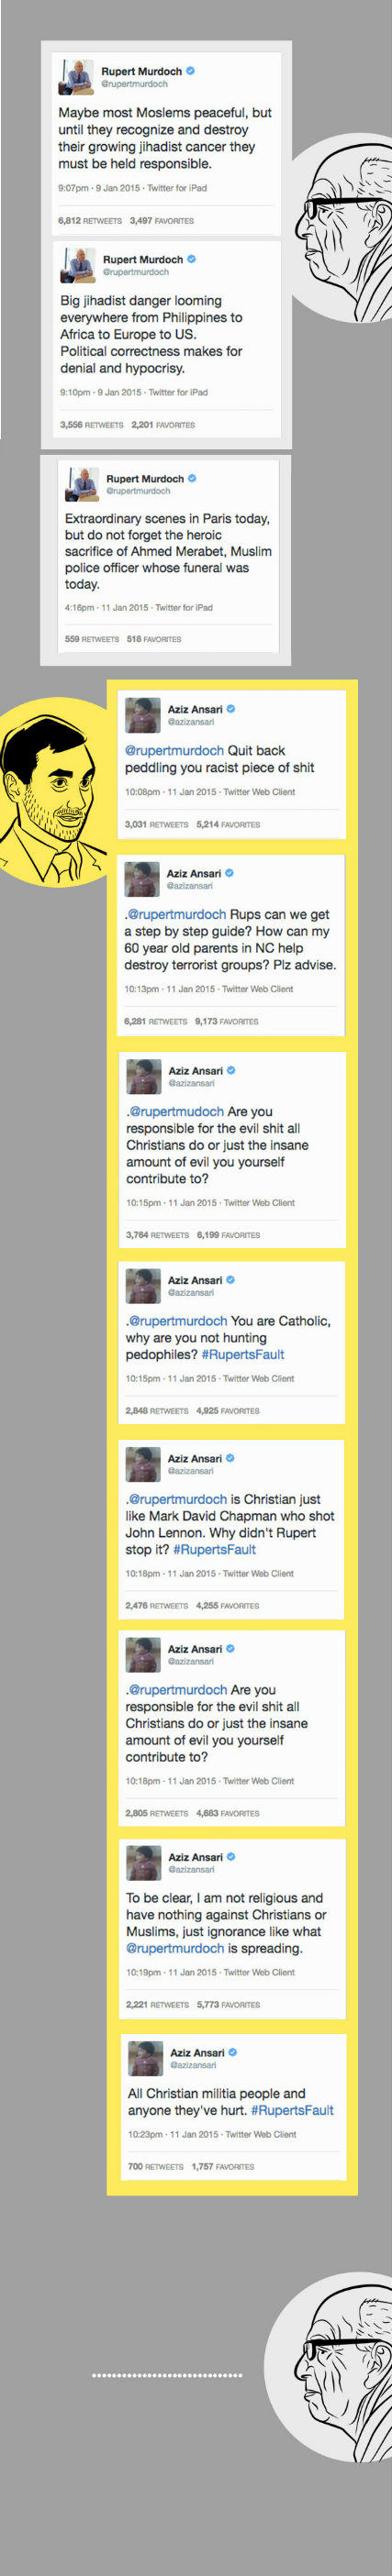 aziz Rupert Murdoch Got Racist And Aziz Ansari Dealed With It Like A Boss